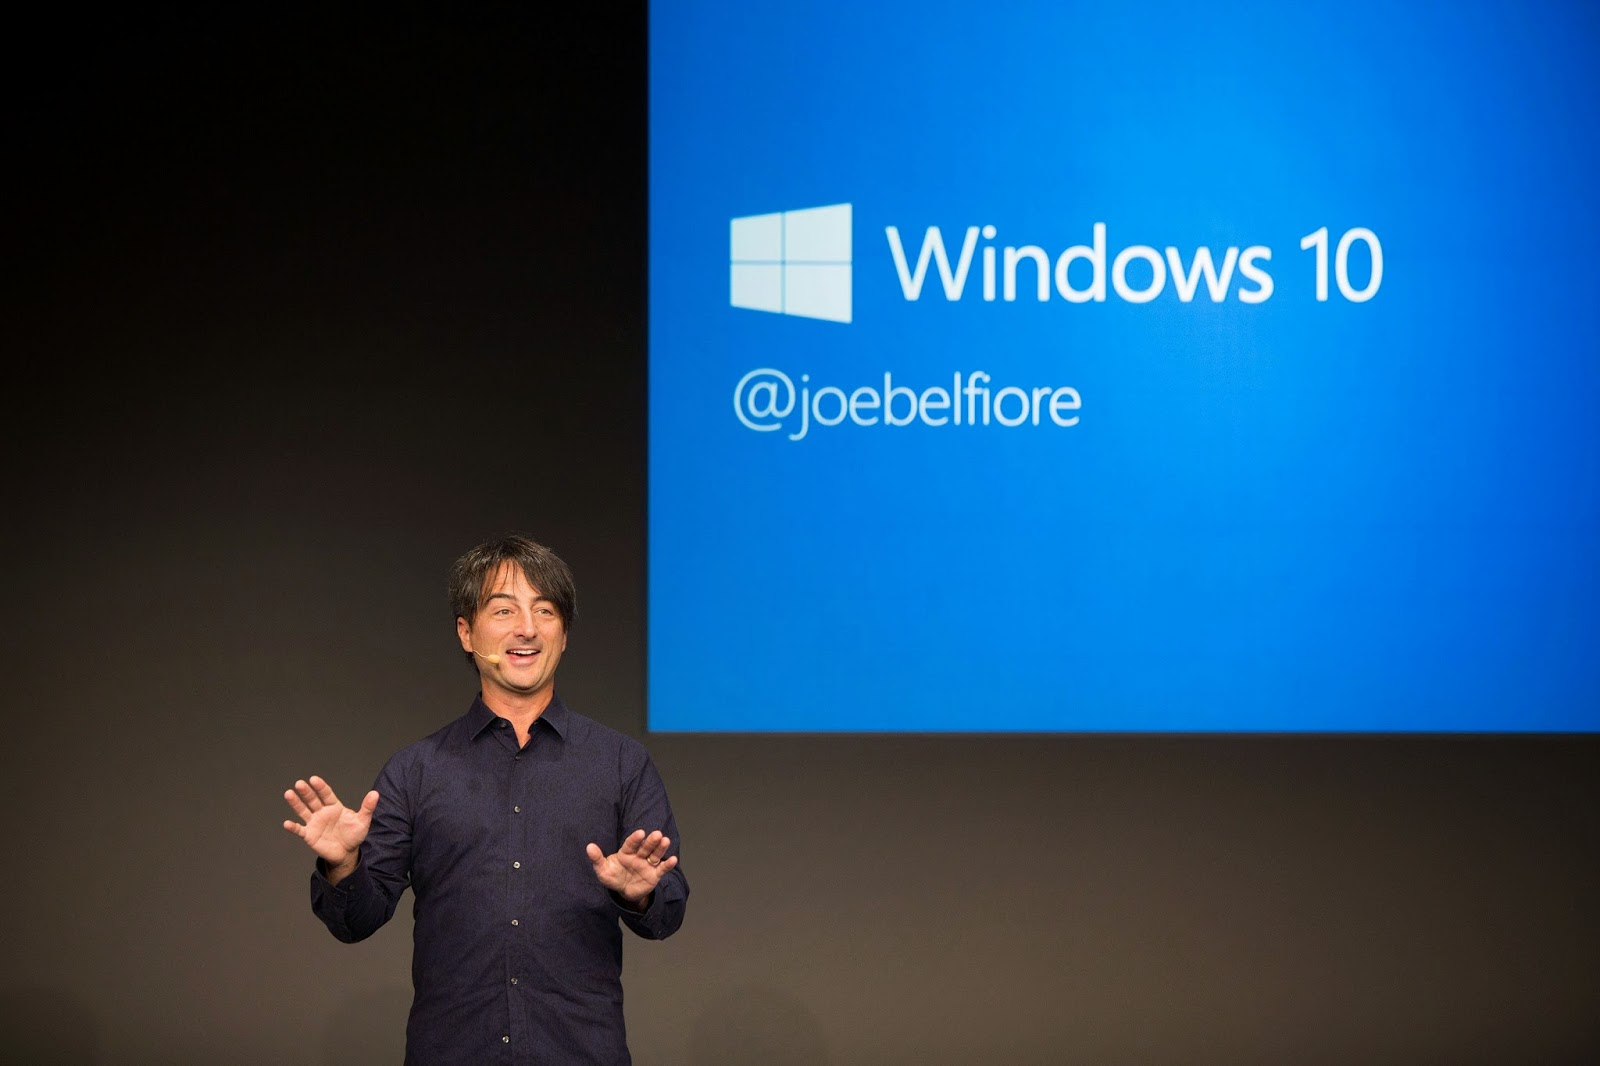 Joe Belfiore, windows 10